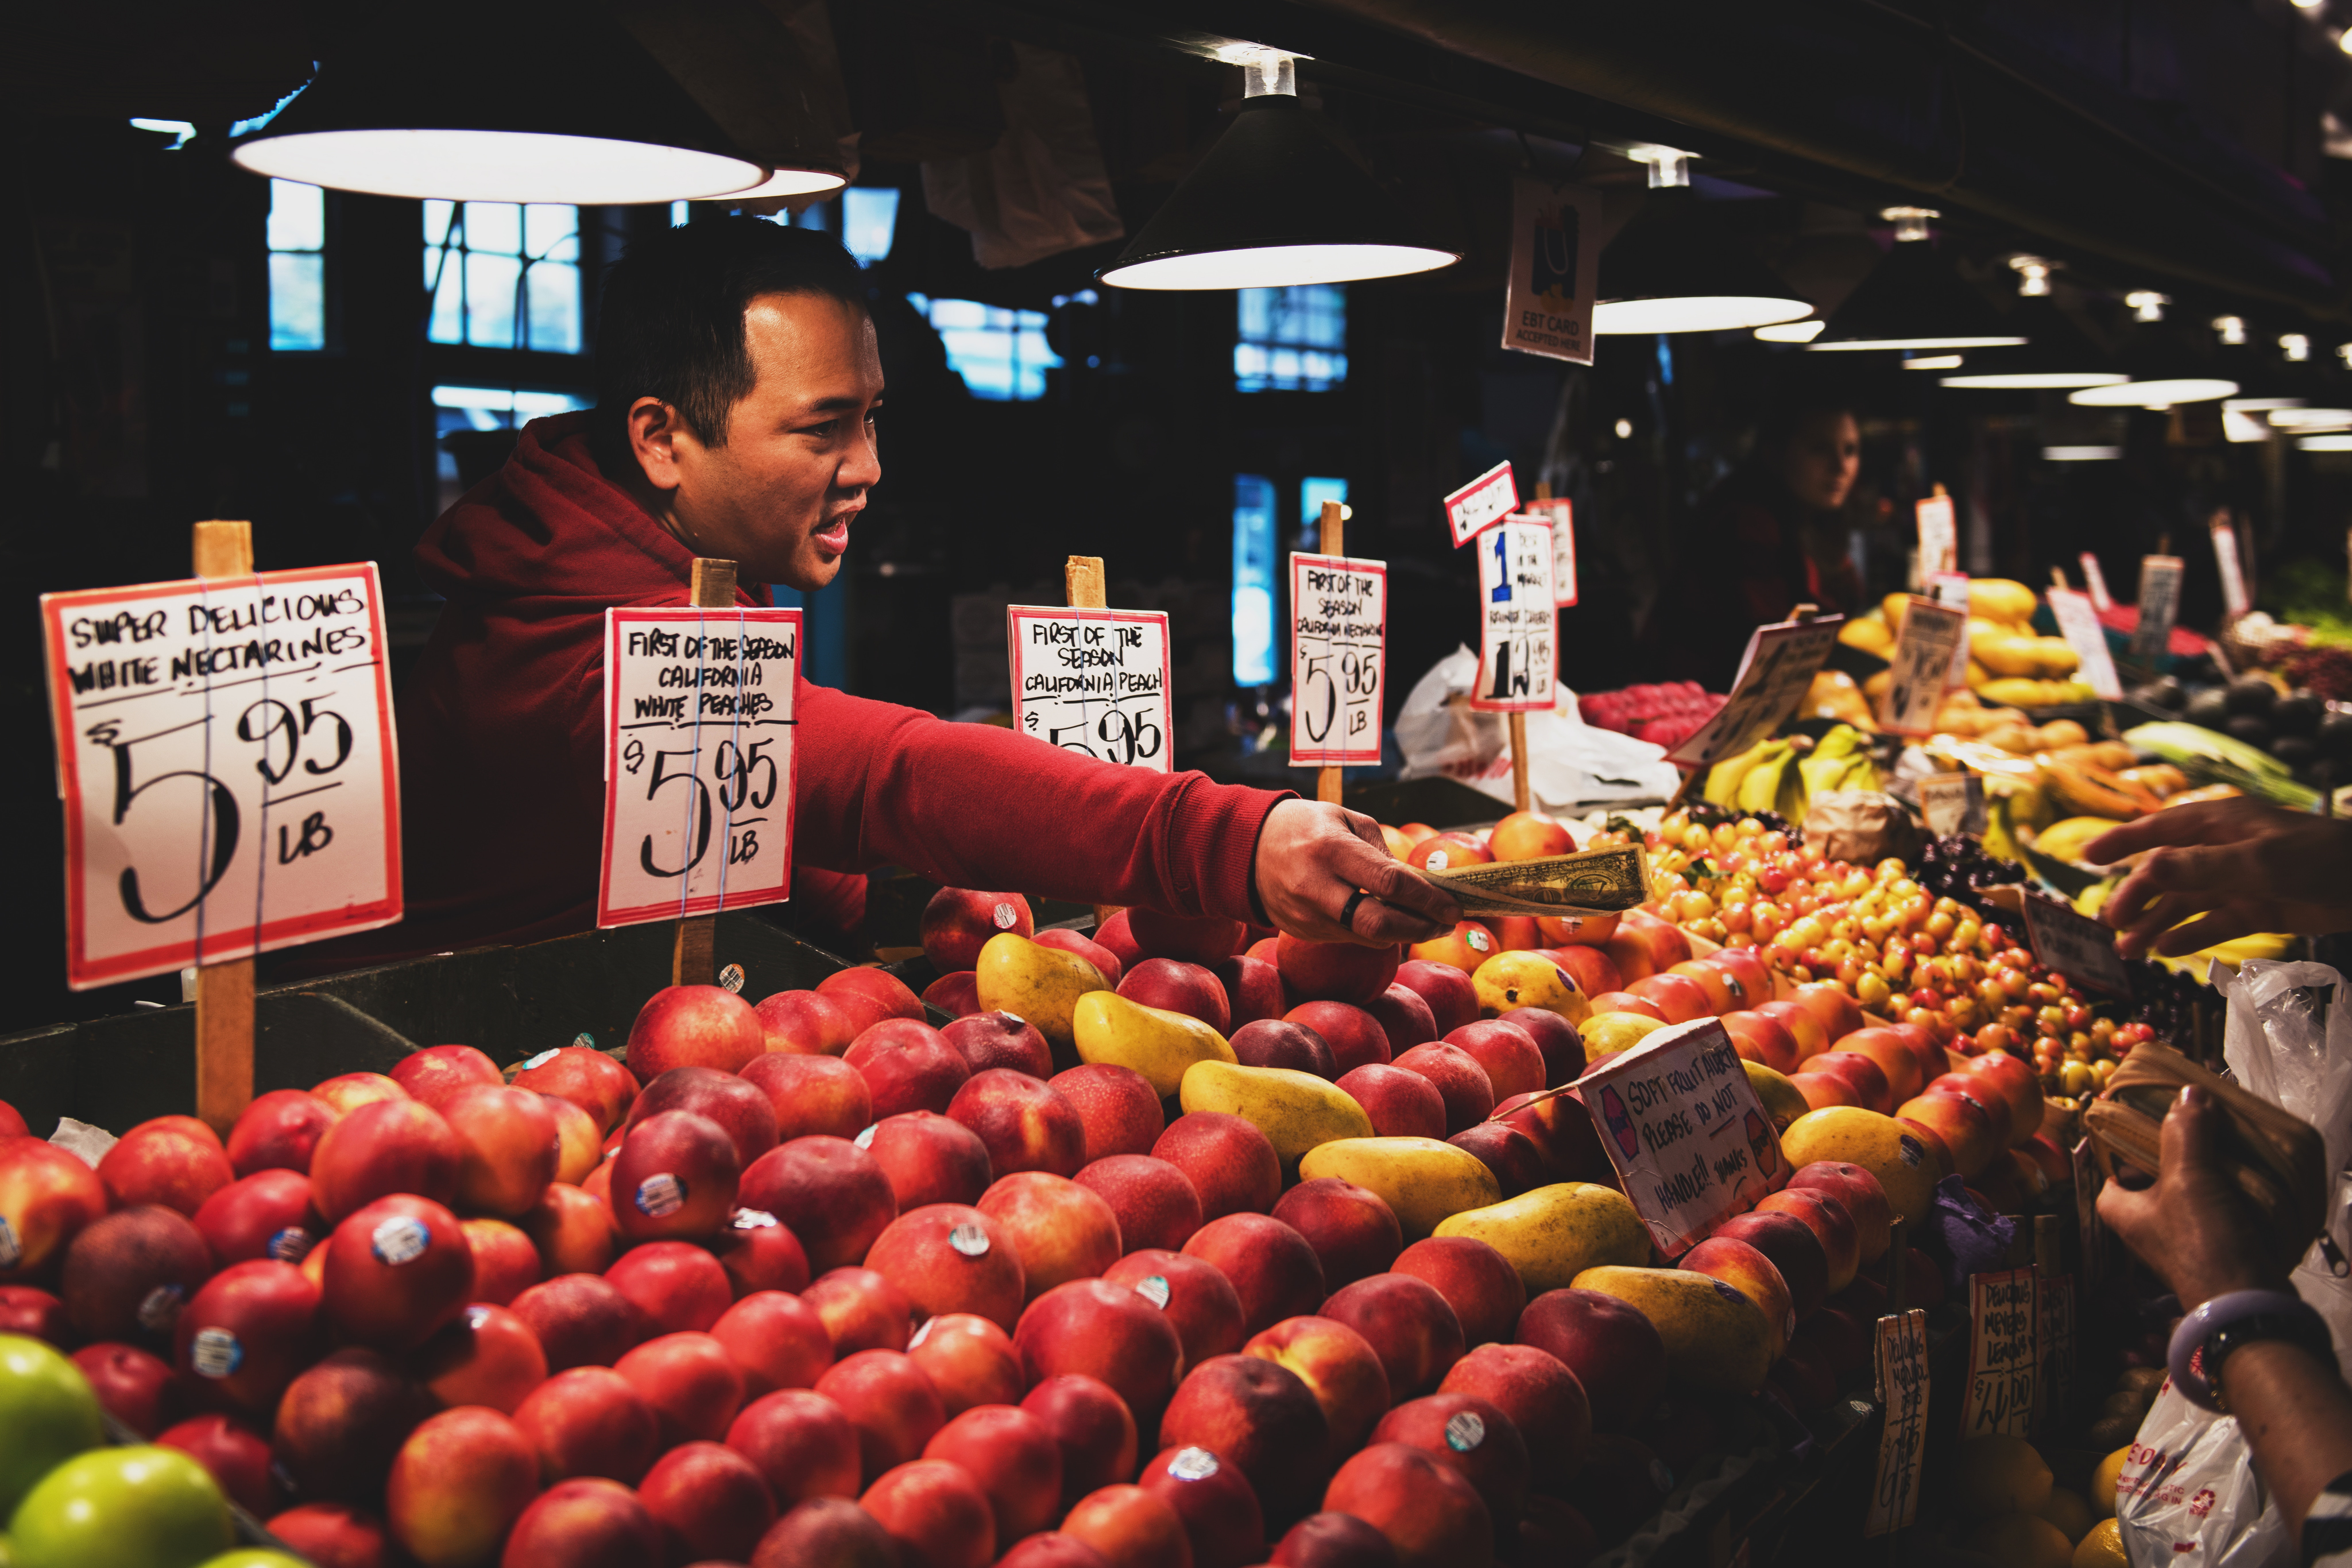 cashier giving a customer change at fruit stand